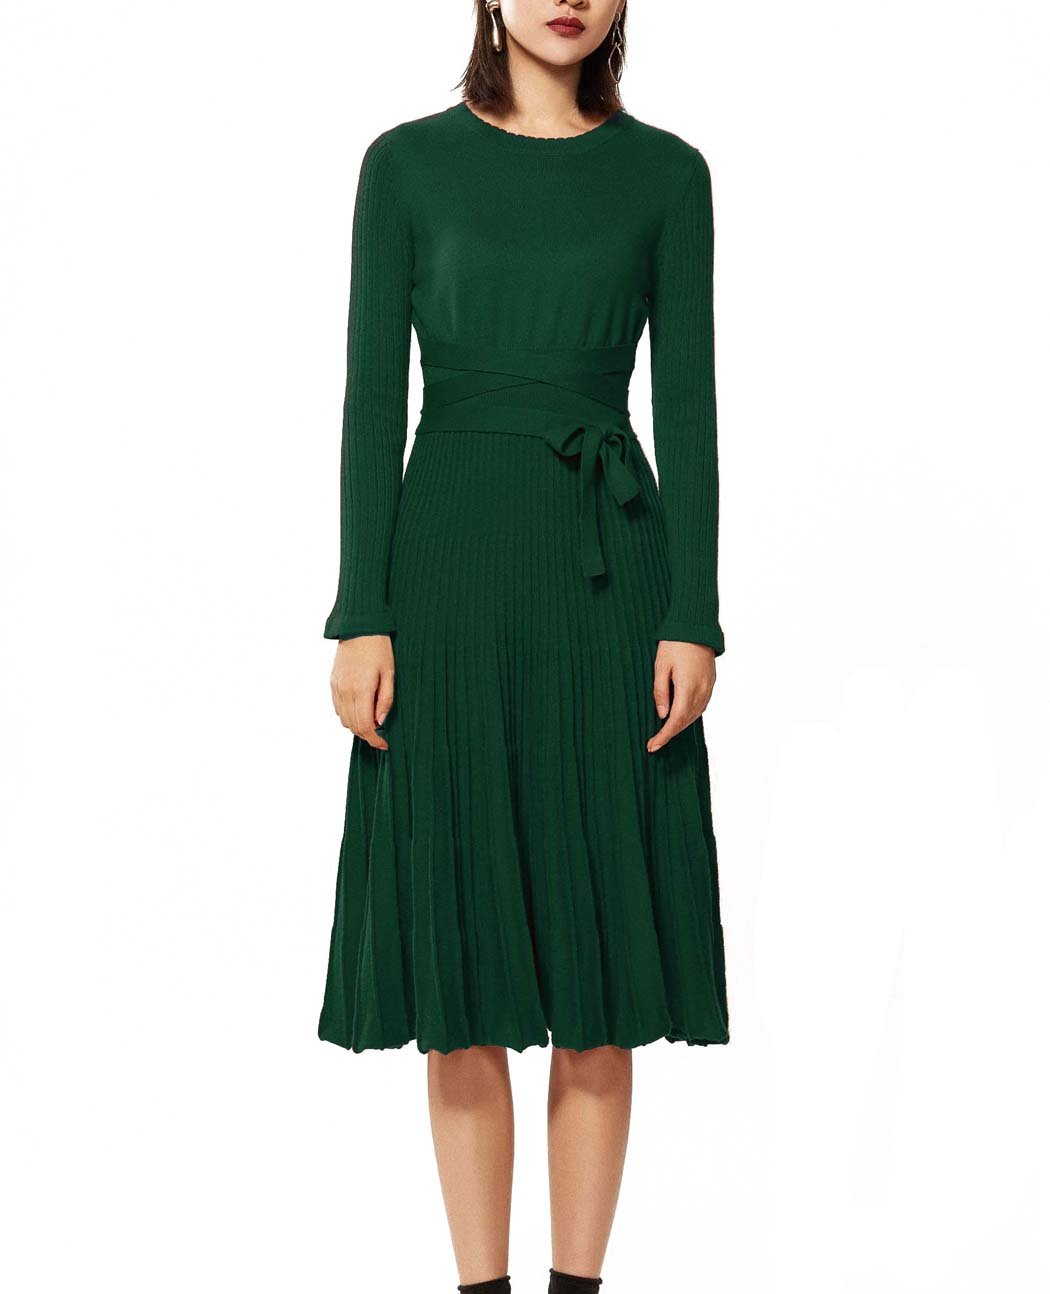 FINCATI Long Sweater Dress 2018 Spring Autumn Cashmere Belt Fitted Waist Pleated Midi Style Maxi Dresses (Green, S)